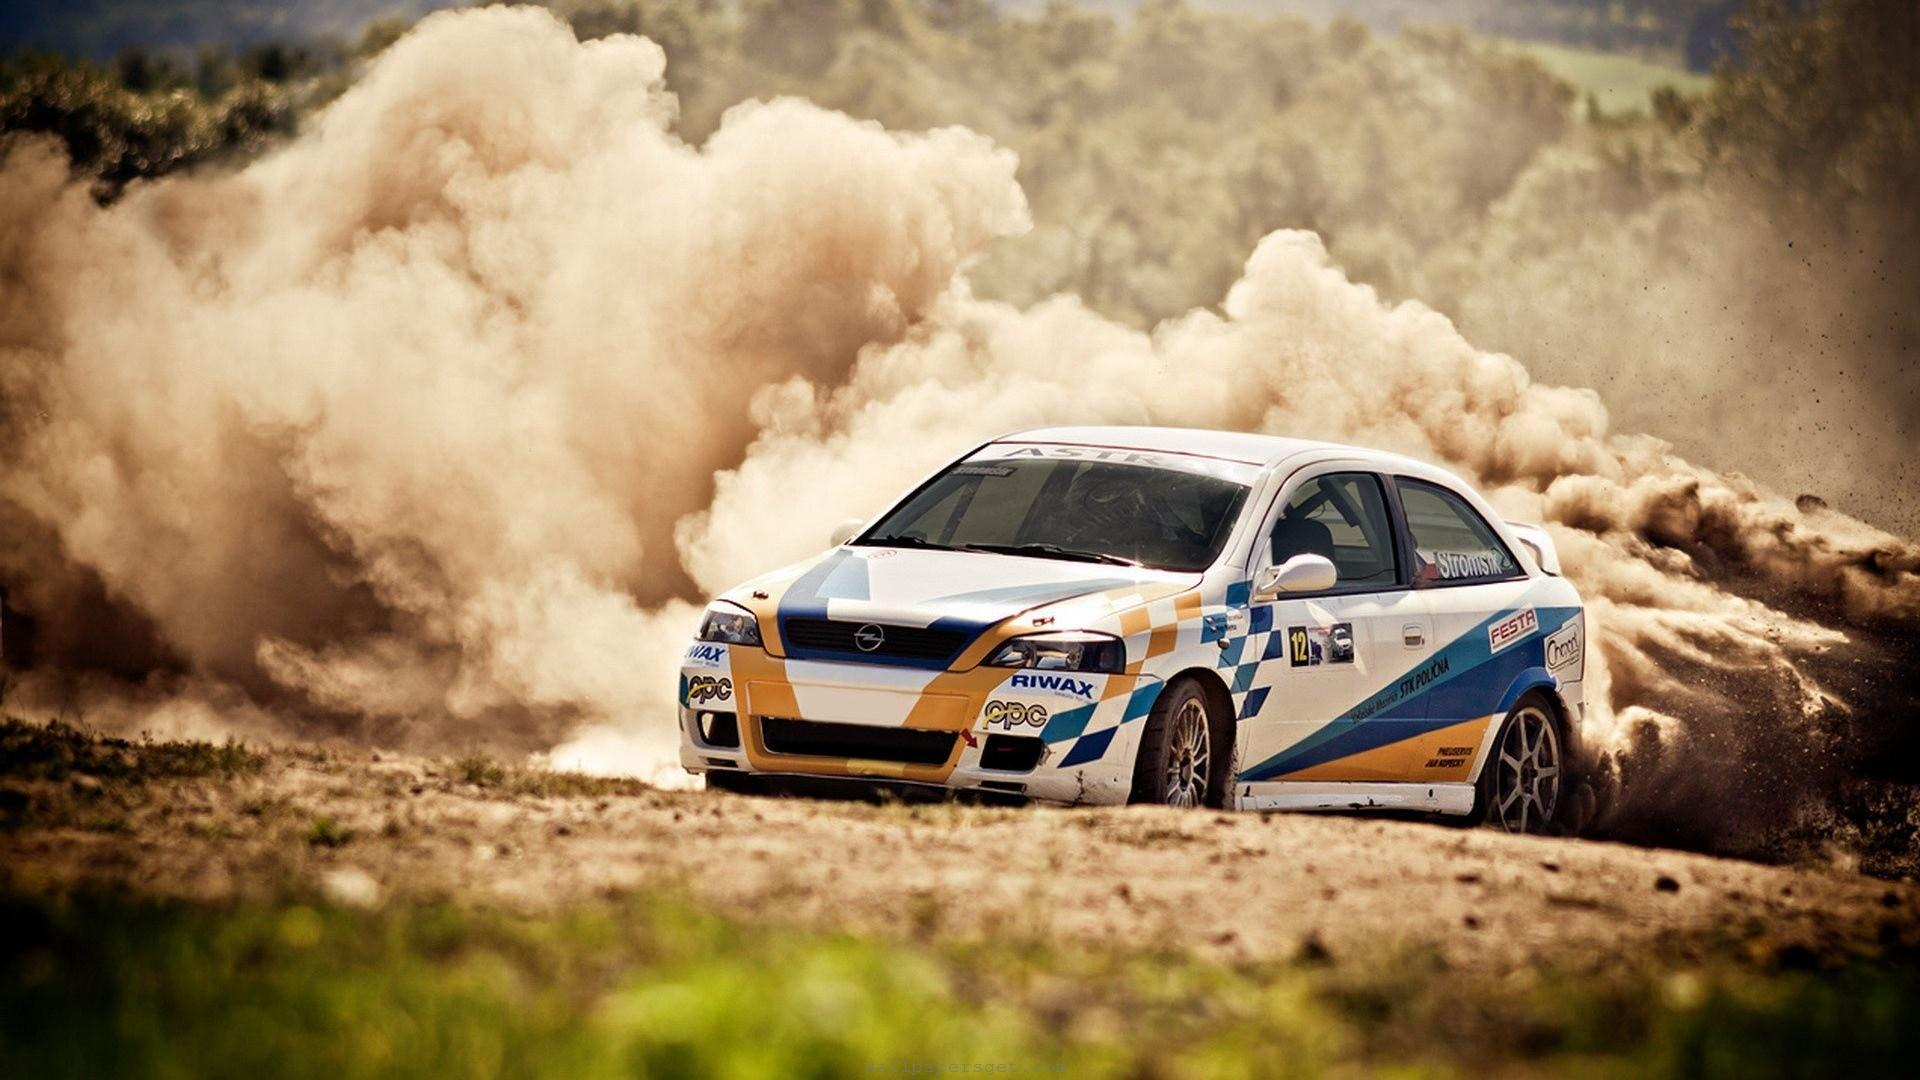 rally car wallpaper 1920x1080